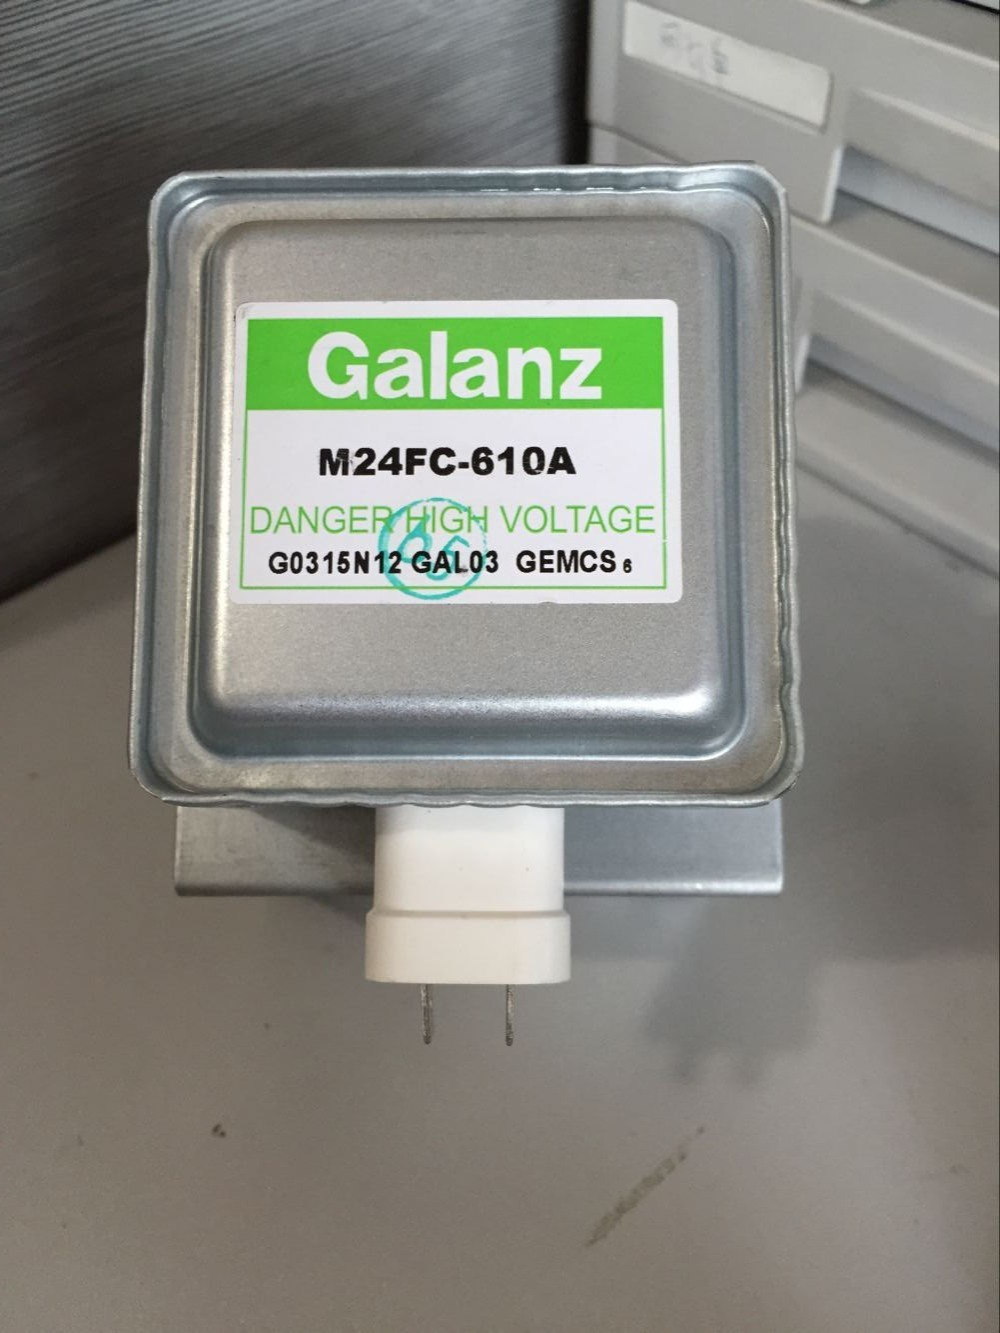 Magnetron For Galanz Microwave Oven M24FC-610A Good Condition 3rw3036 1ab04 22kw 400v used in good condition